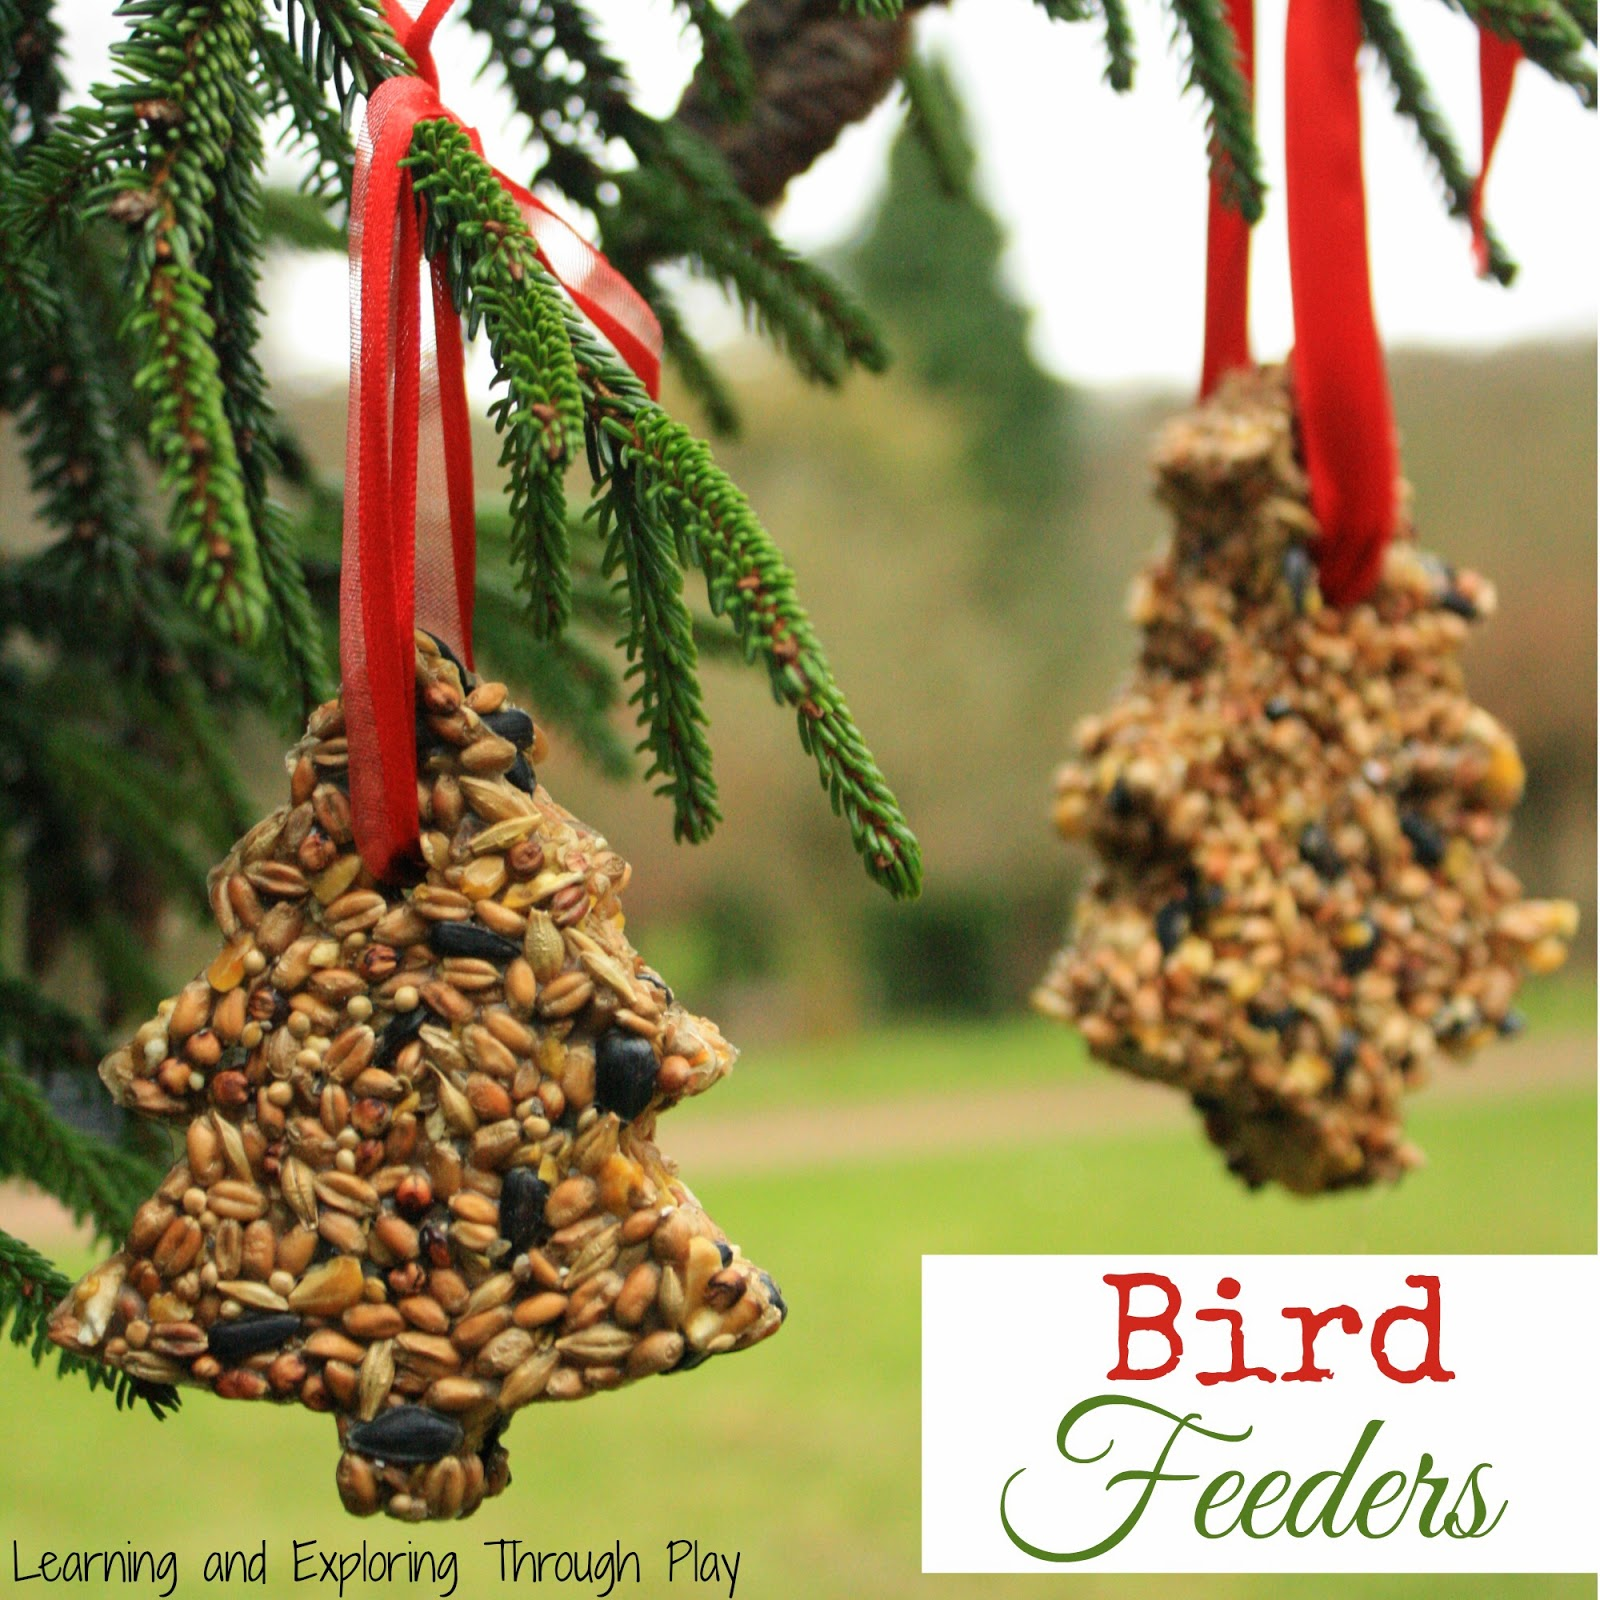 http://learningandexploringthroughplay.blogspot.co.uk/2014/12/homemade-bird-feeders.html